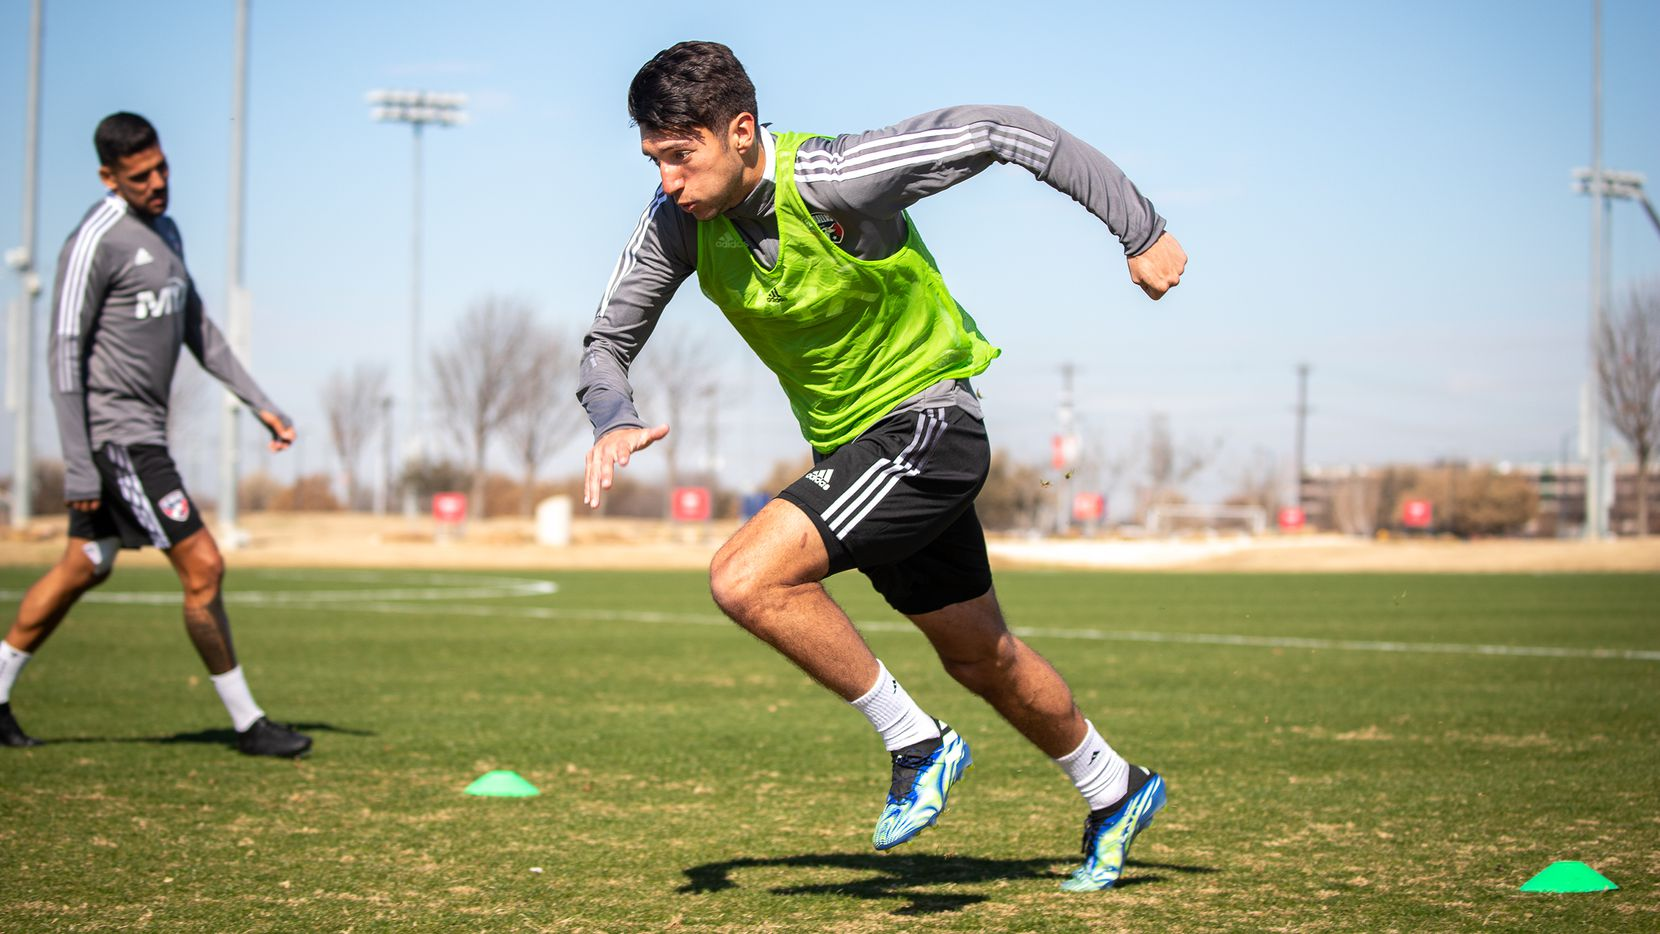 FC Dallas winger Kalil ElMedkhar is pictured during a 2021 training session.